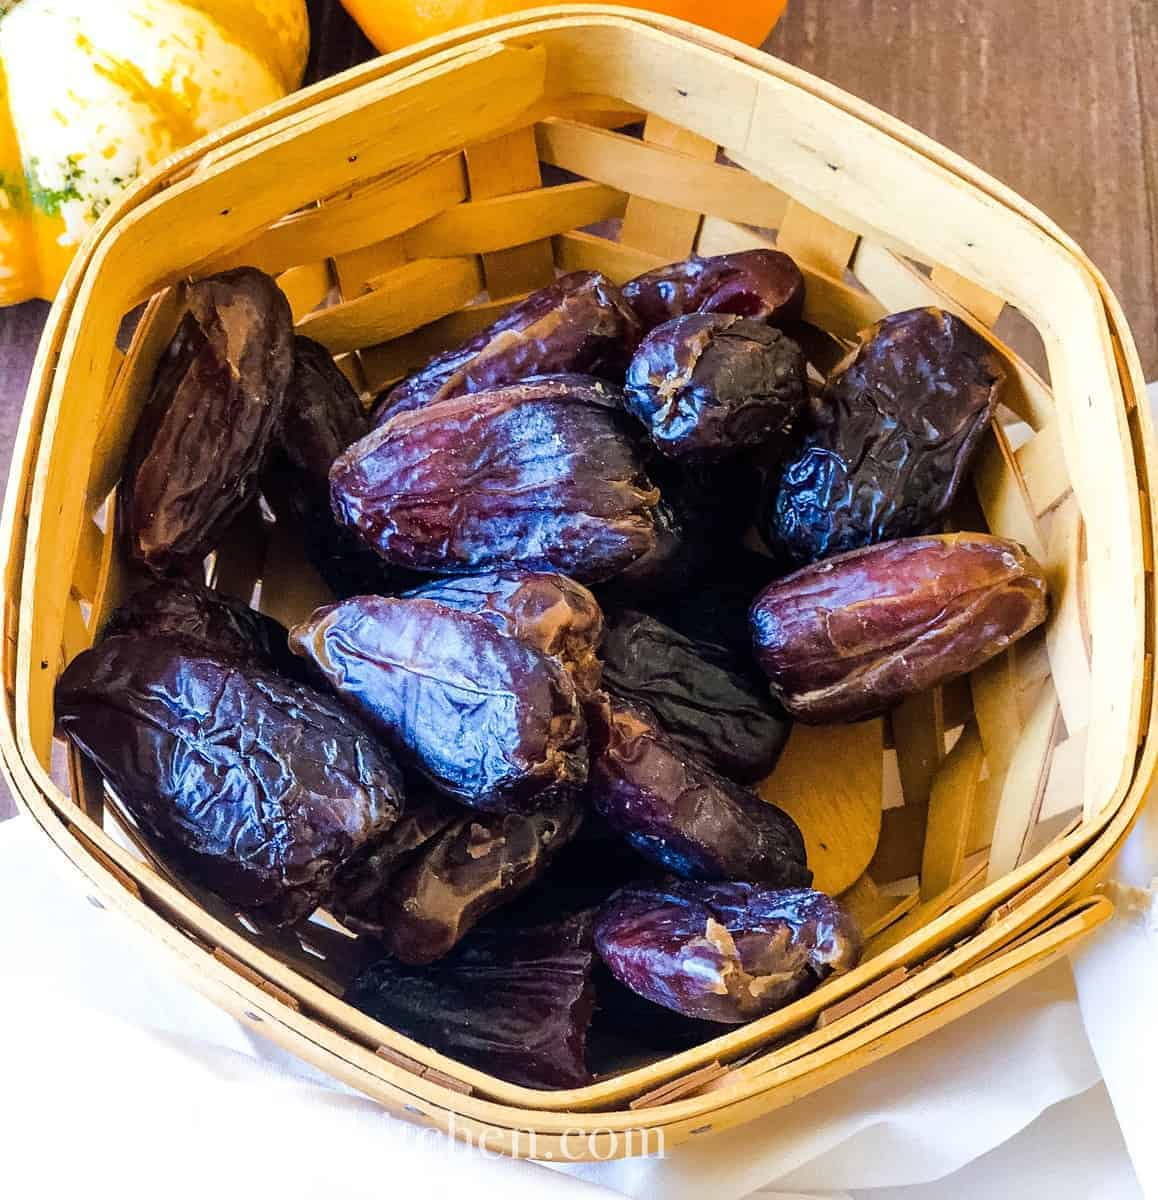 medjool dates in a basket